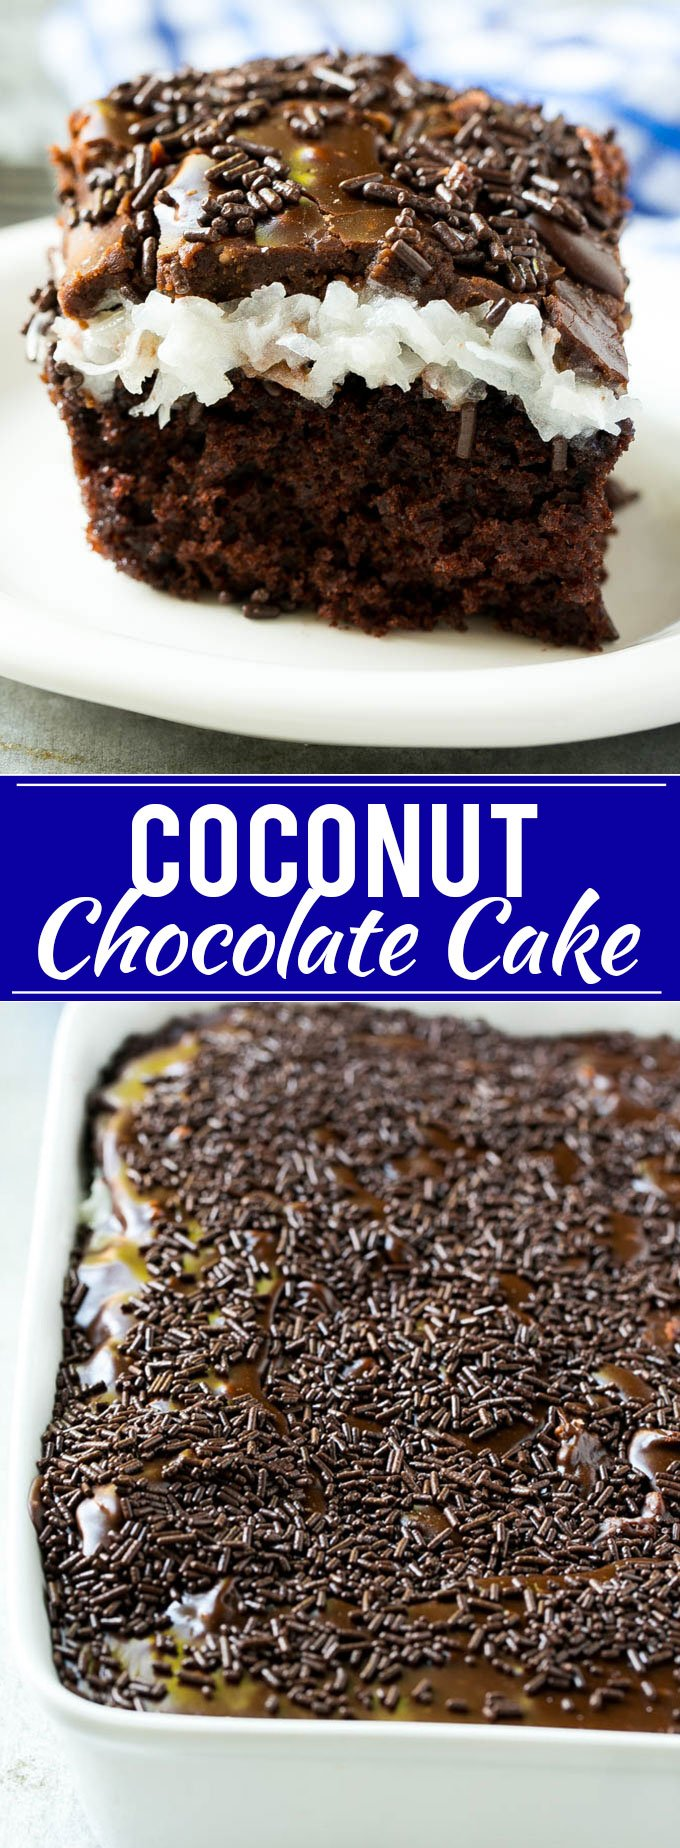 Chocolate Coconut Cake Recipe | Easy Chocolate Cake | Chocolate and Coconut Recipe #cake #chocolate #coconut #dessert #dinneratthezoo